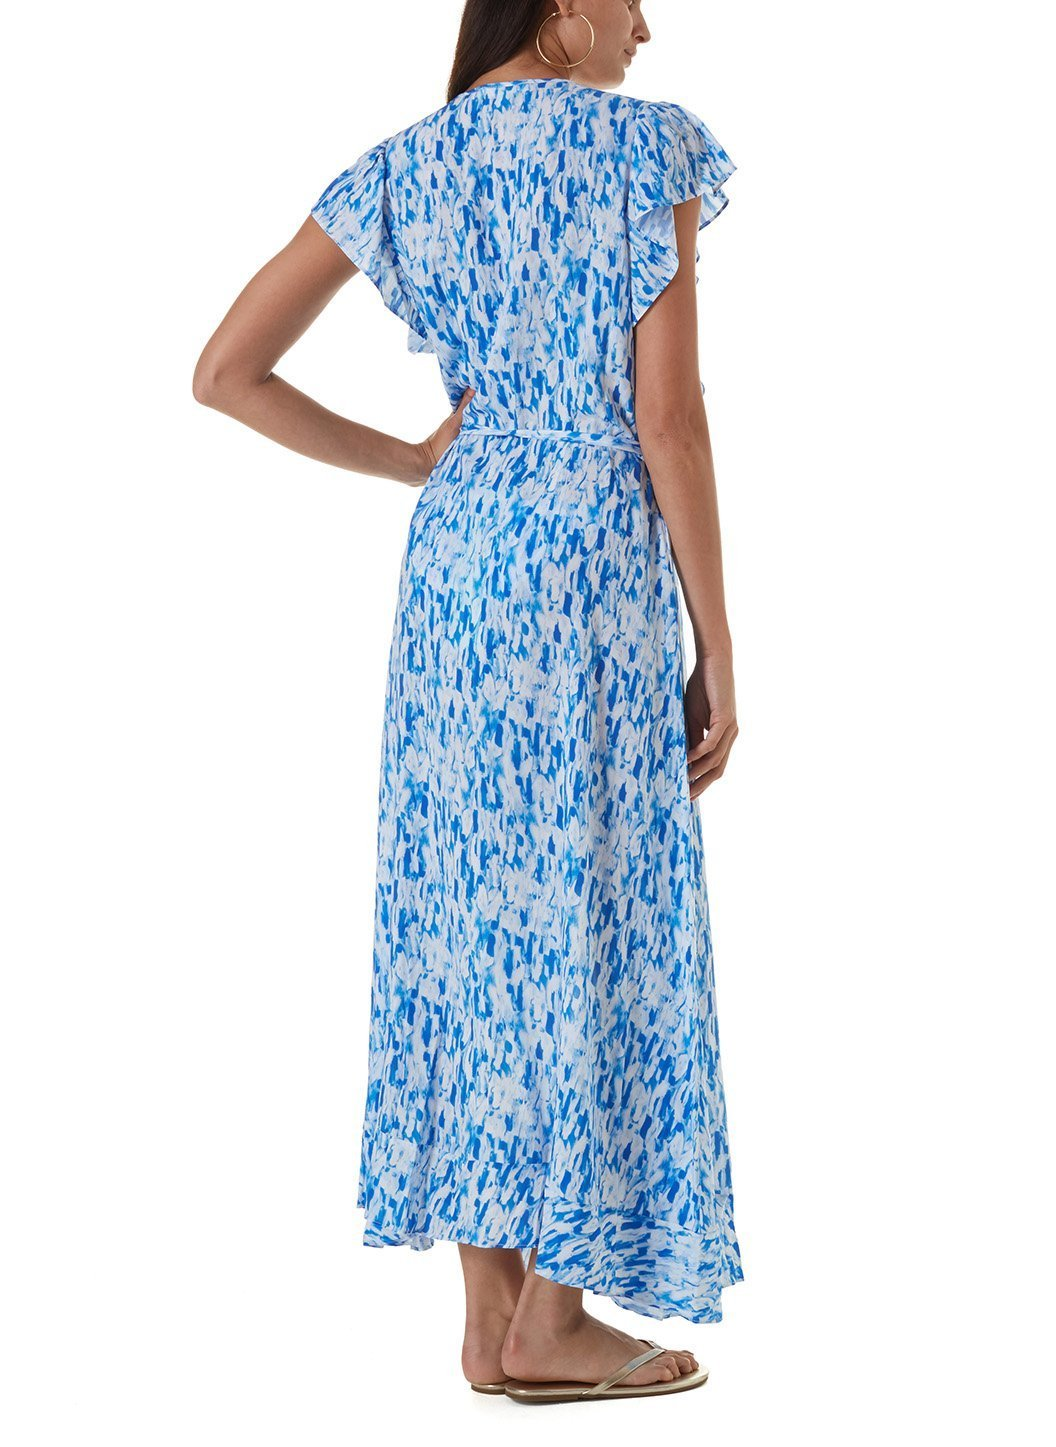 brianna waterfall long dress